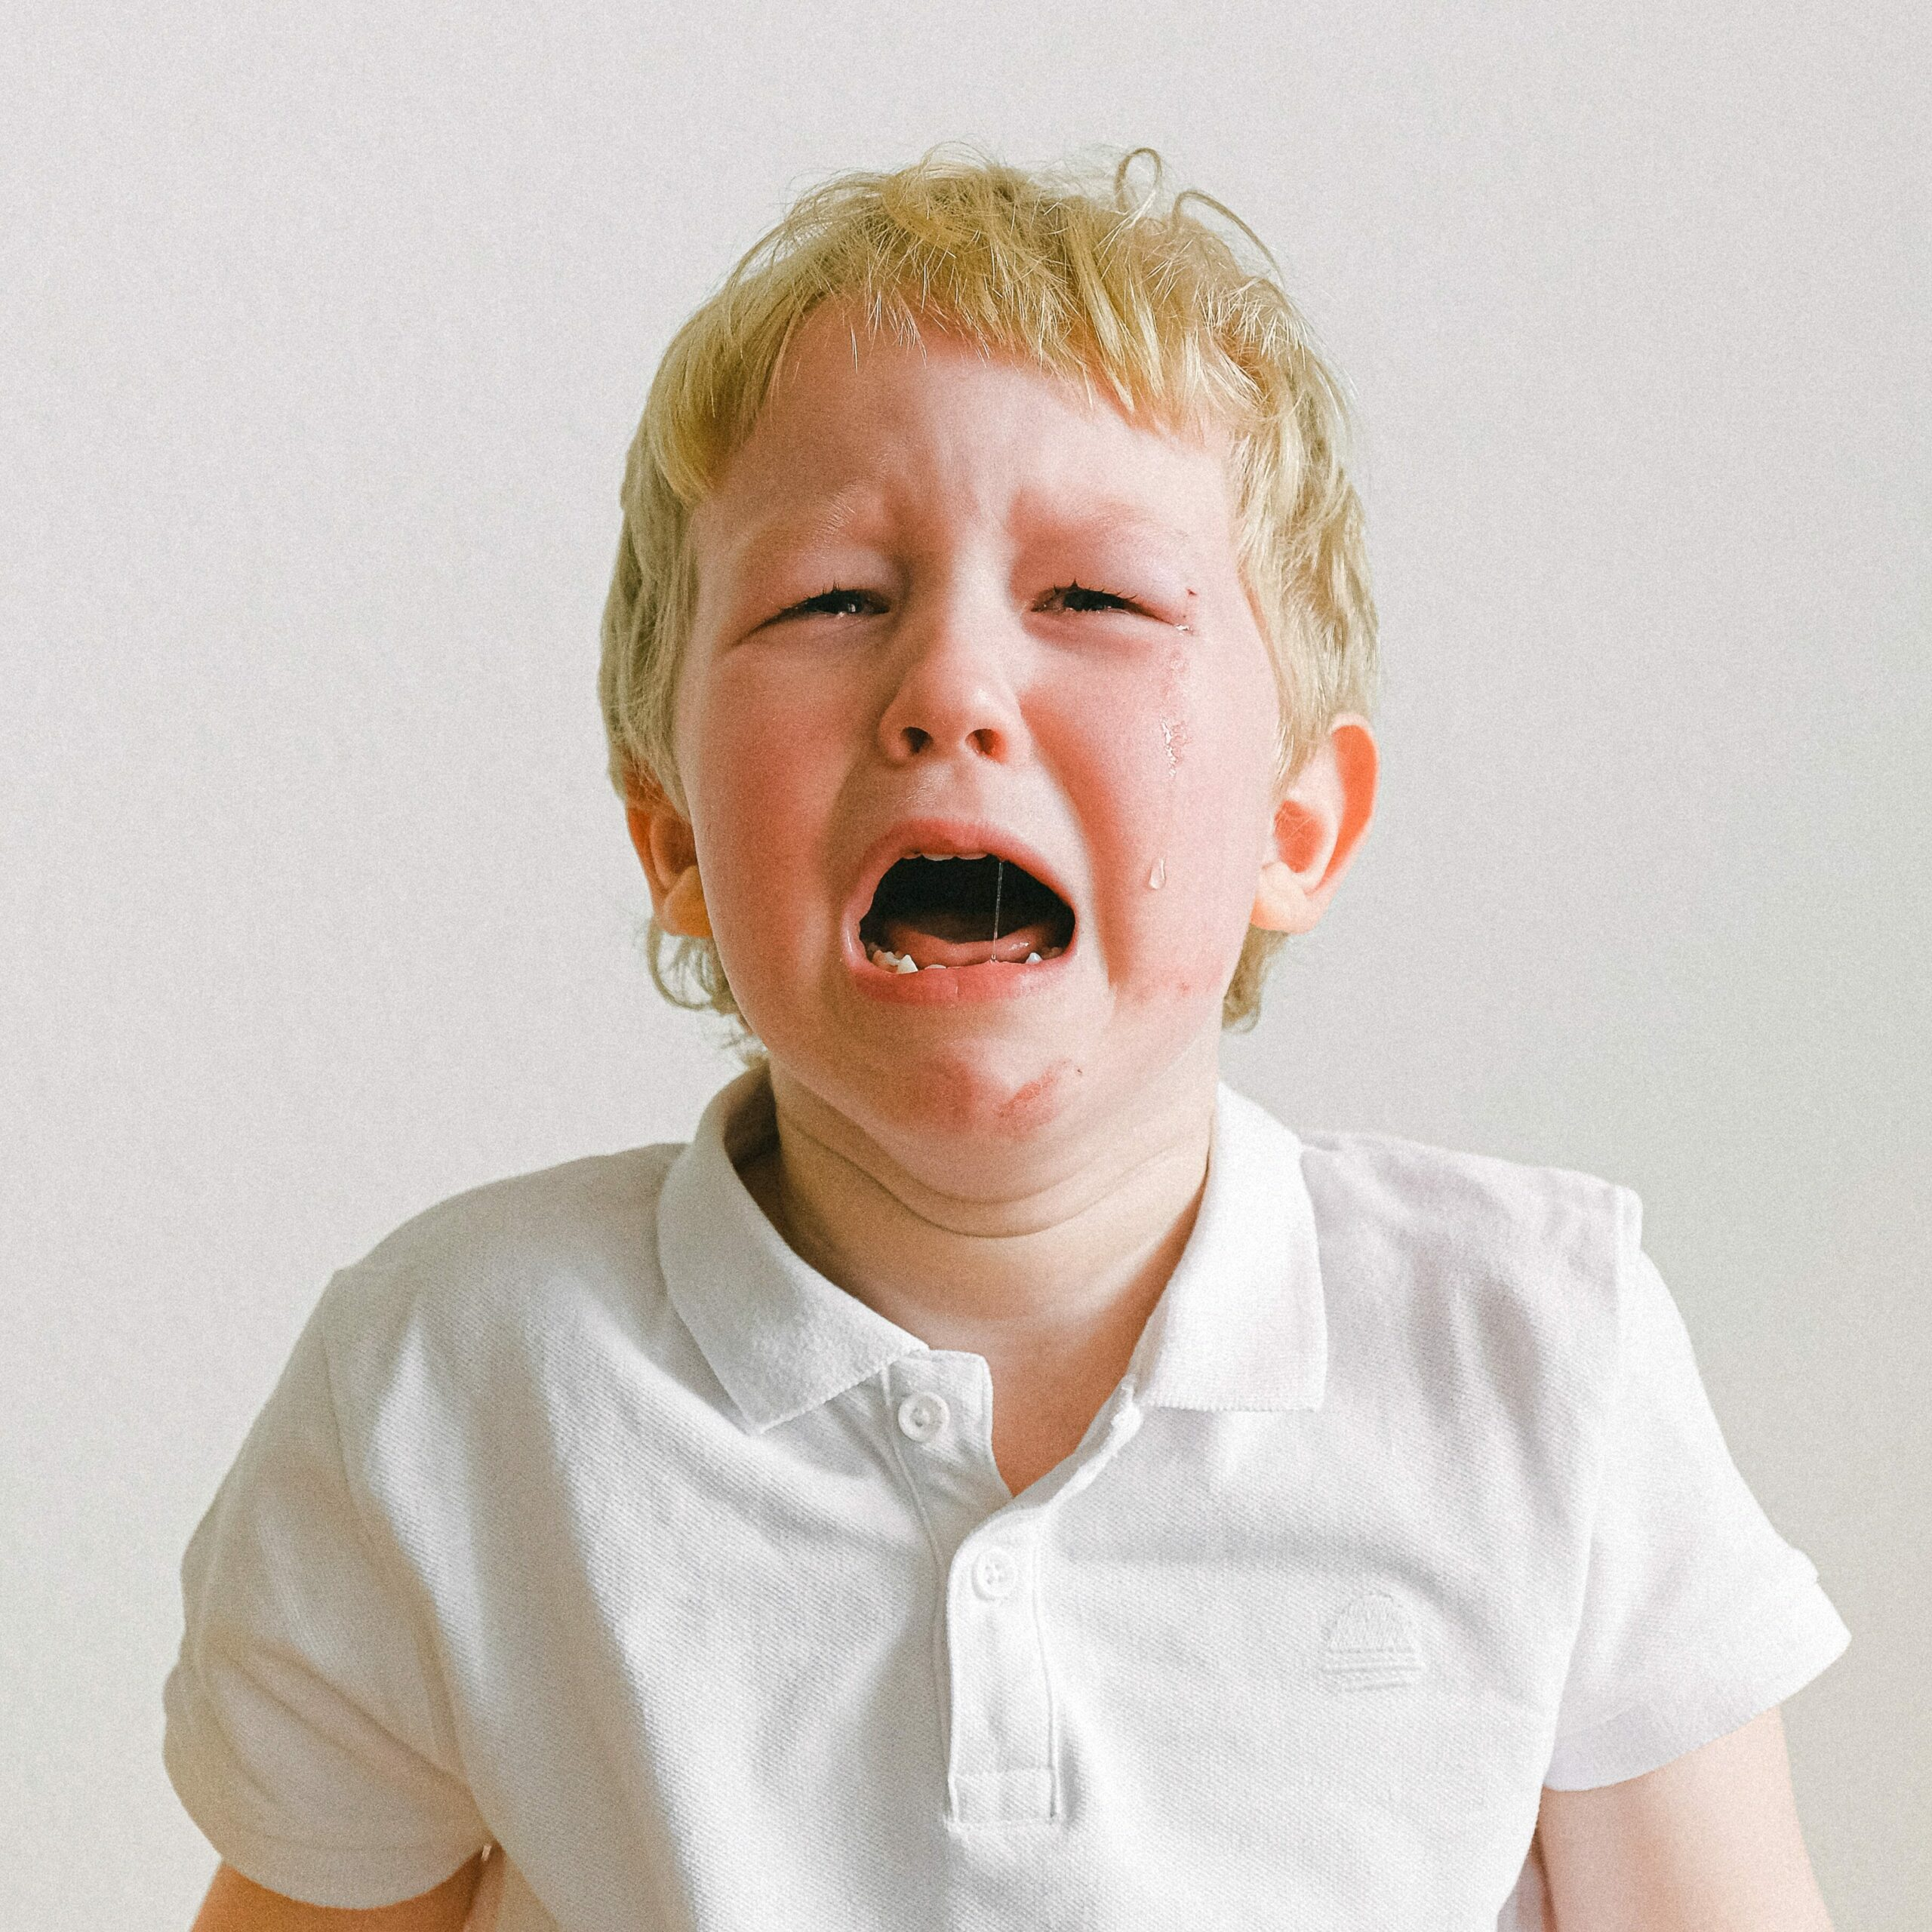 Picture of a crying boy with a white shirt in front of a white wall